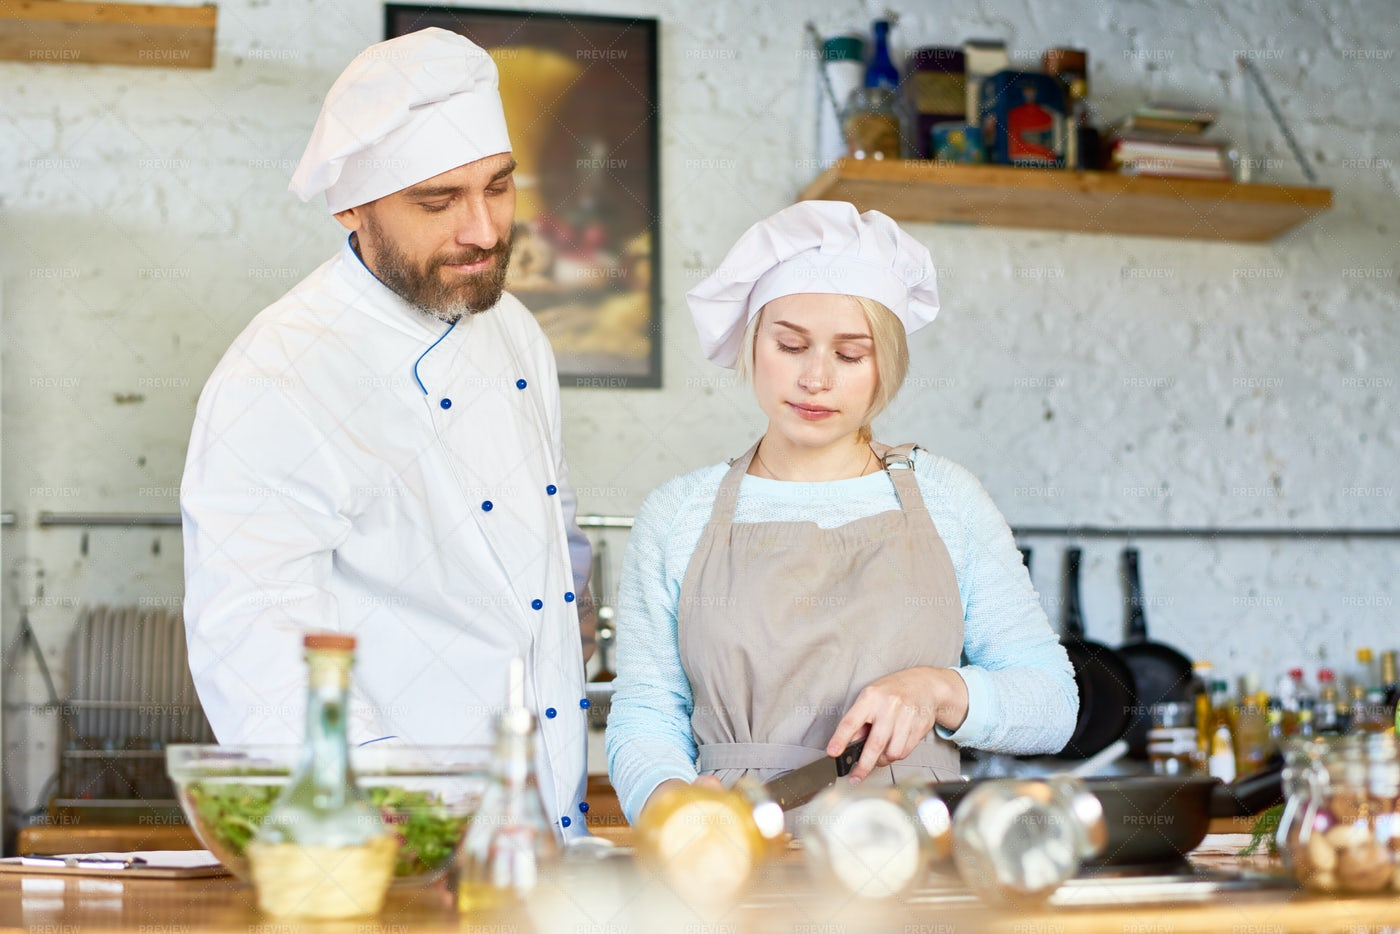 Cooking Workshop In Cafe: Stock Photos